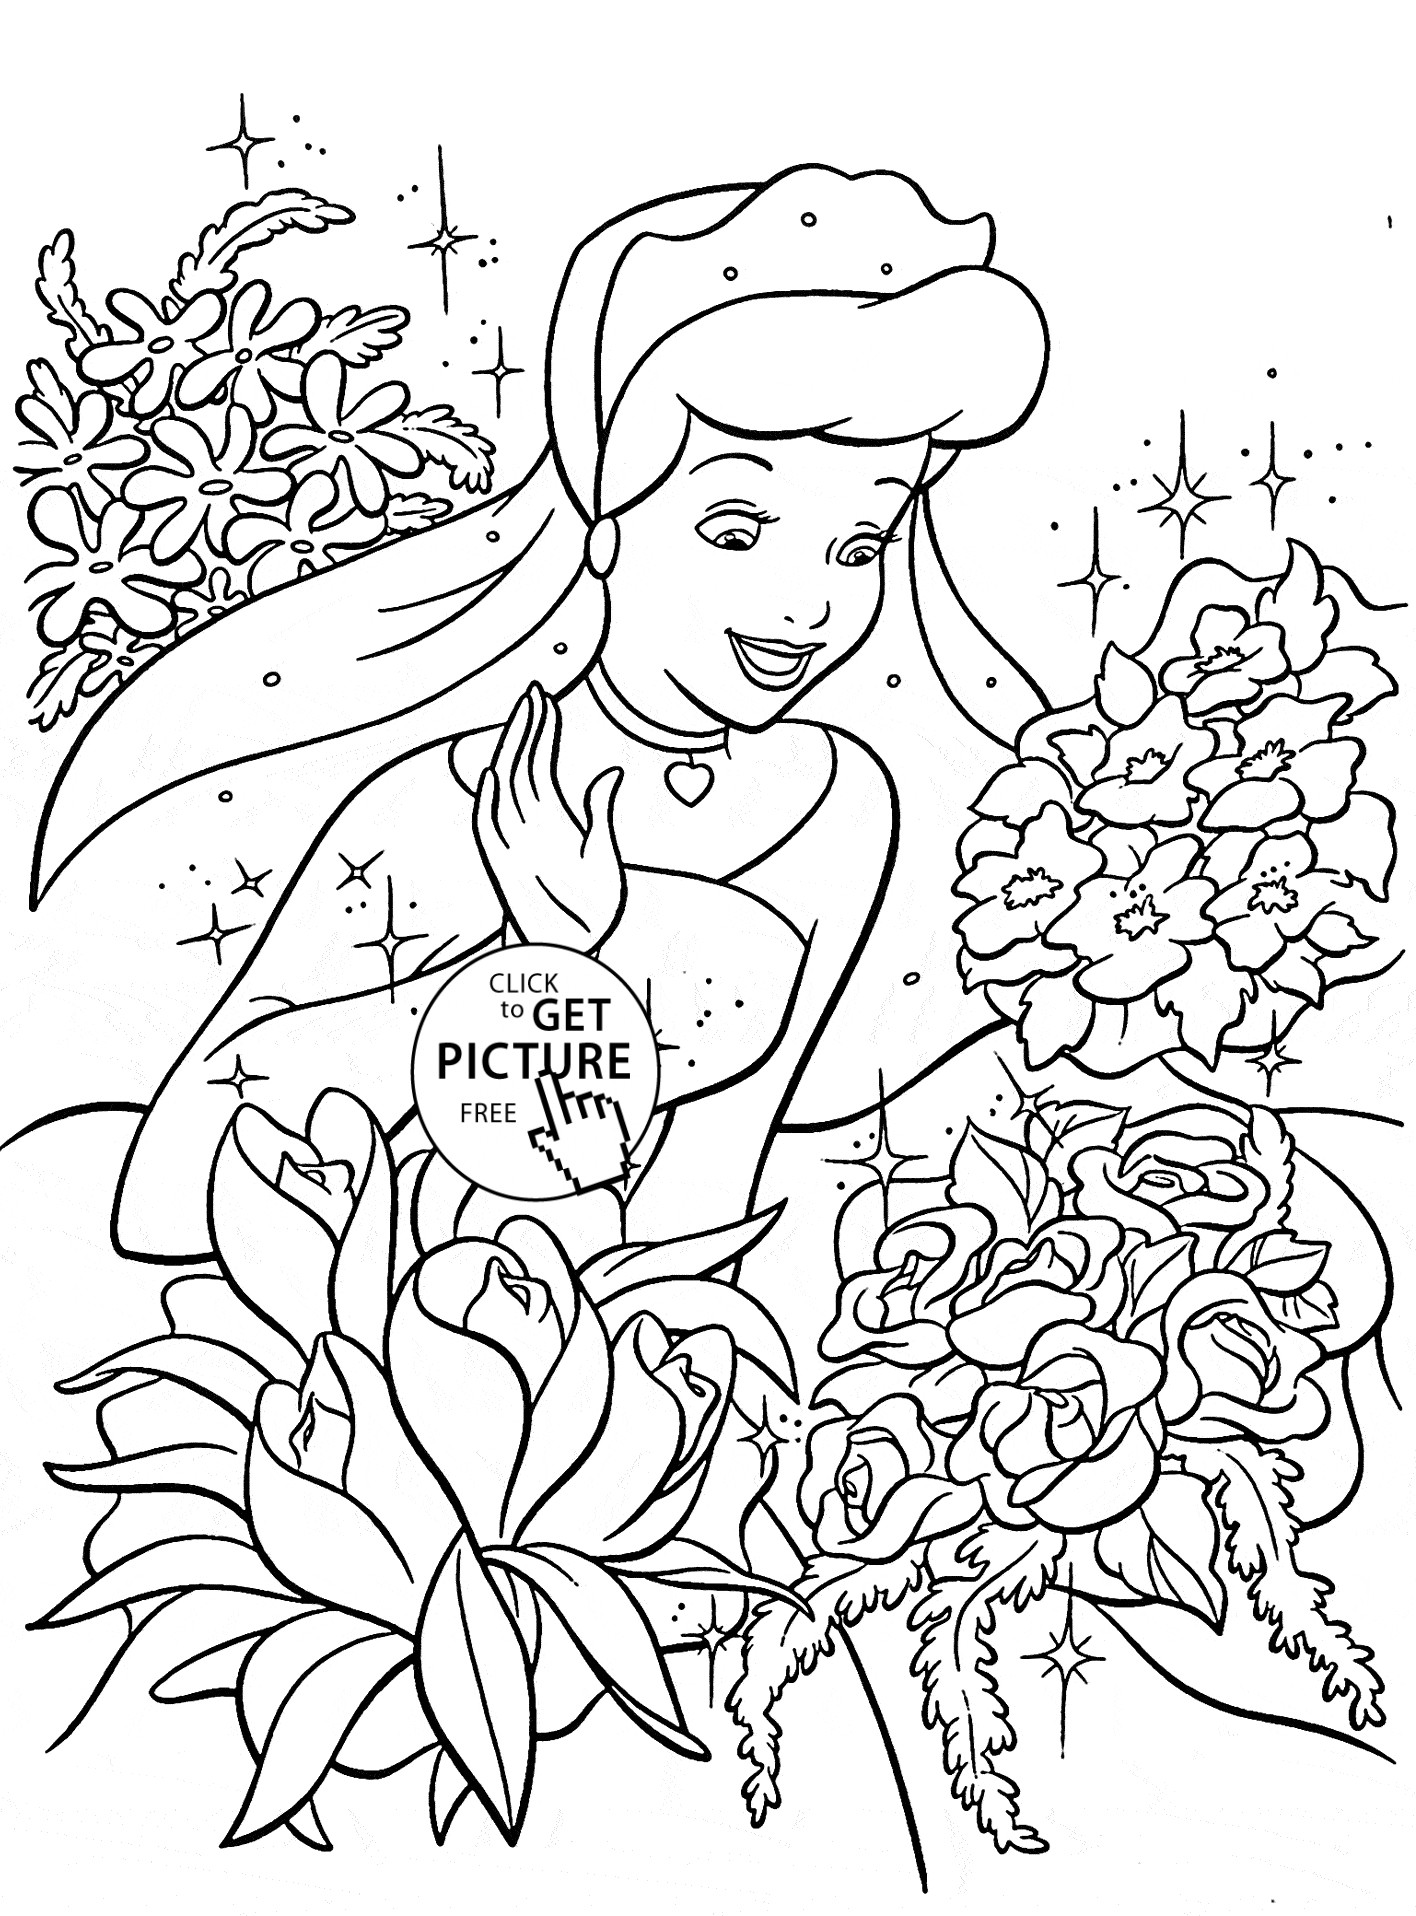 coloring cinderella pictures free easy to print cinderella coloring pages tulamama cinderella coloring pictures